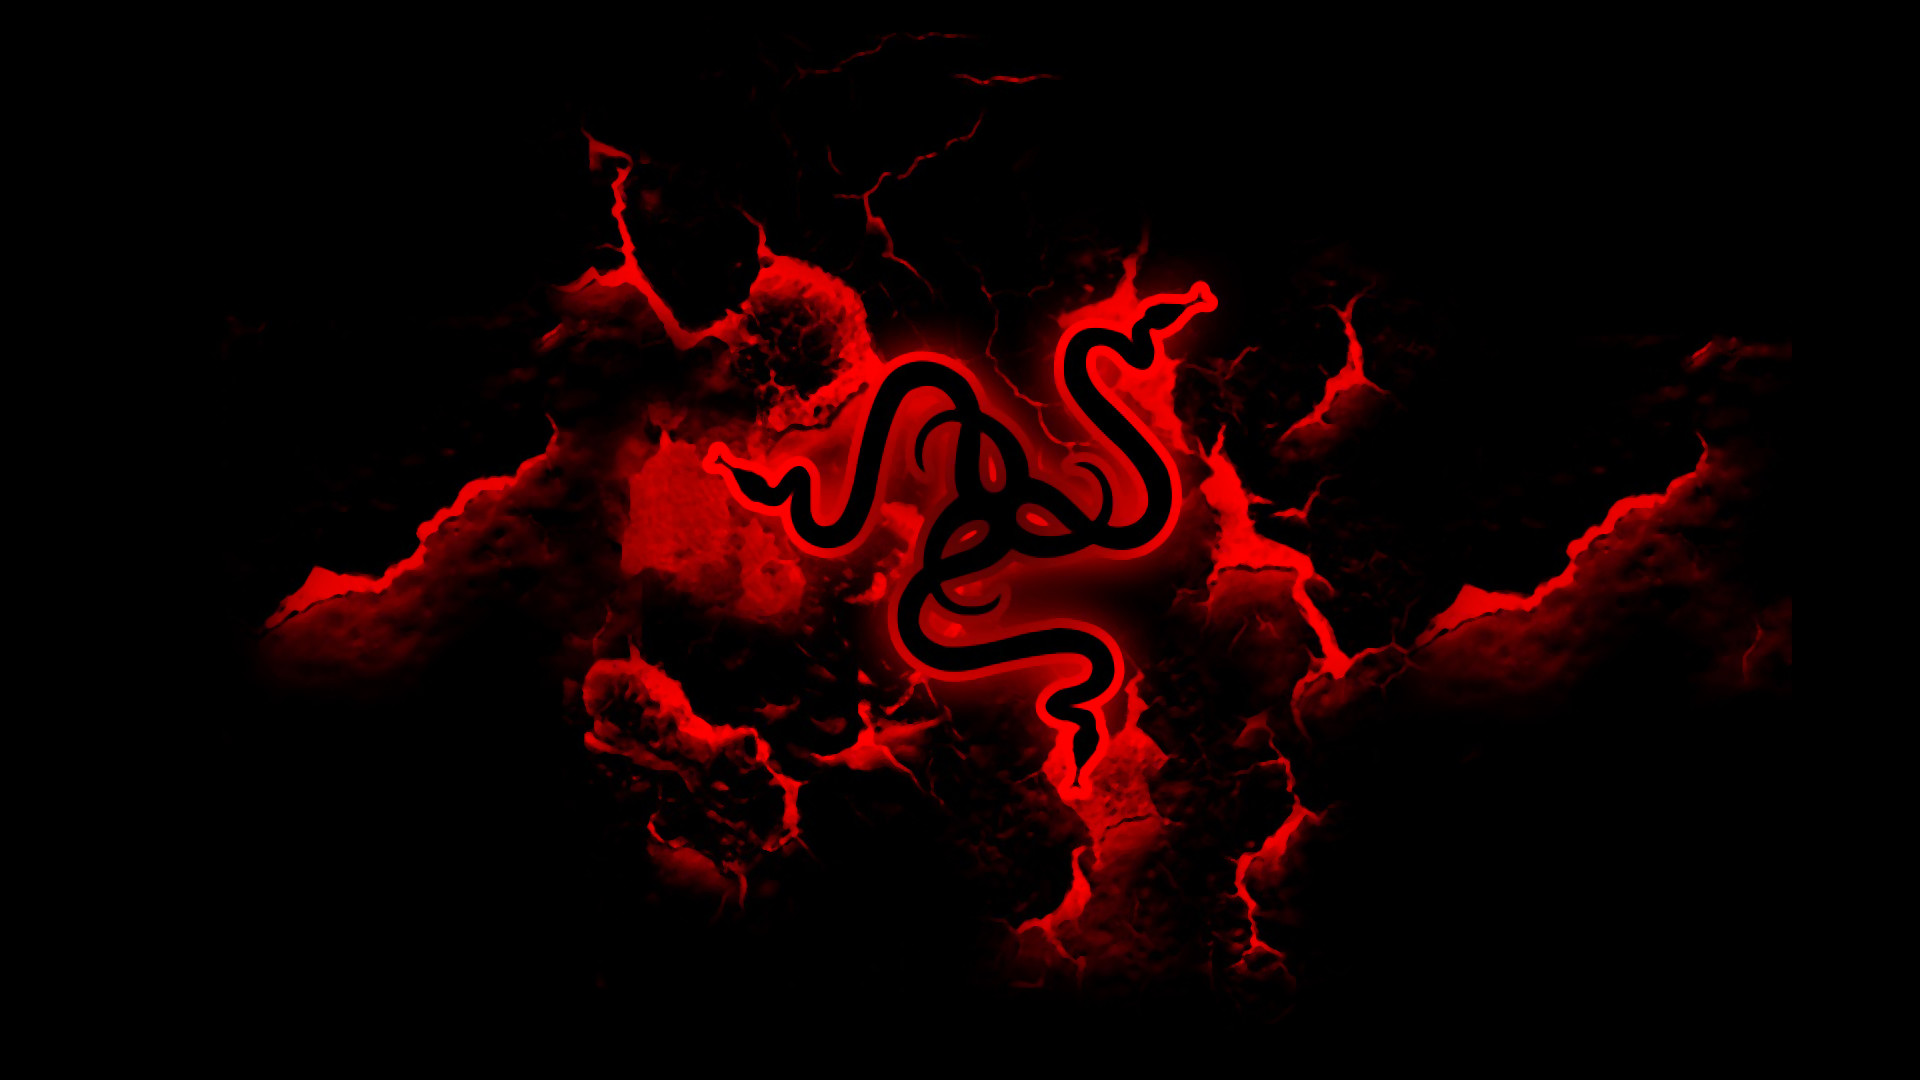 Black And Red >> Cool Black And Red Wallpapers 59 Images